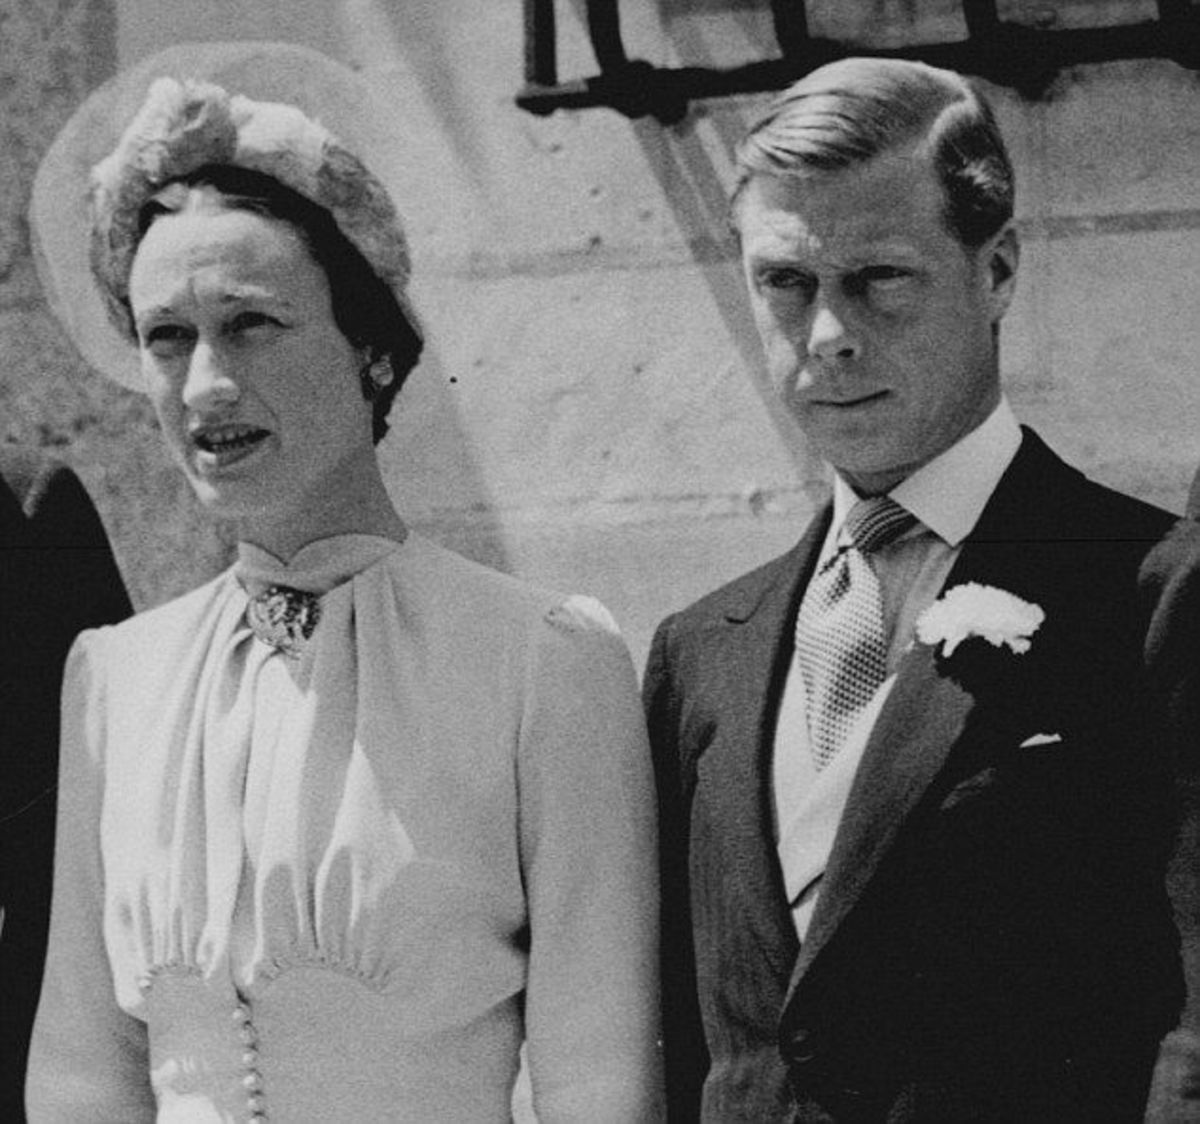 The Duke and Duchess of Windsor married in France in 1936